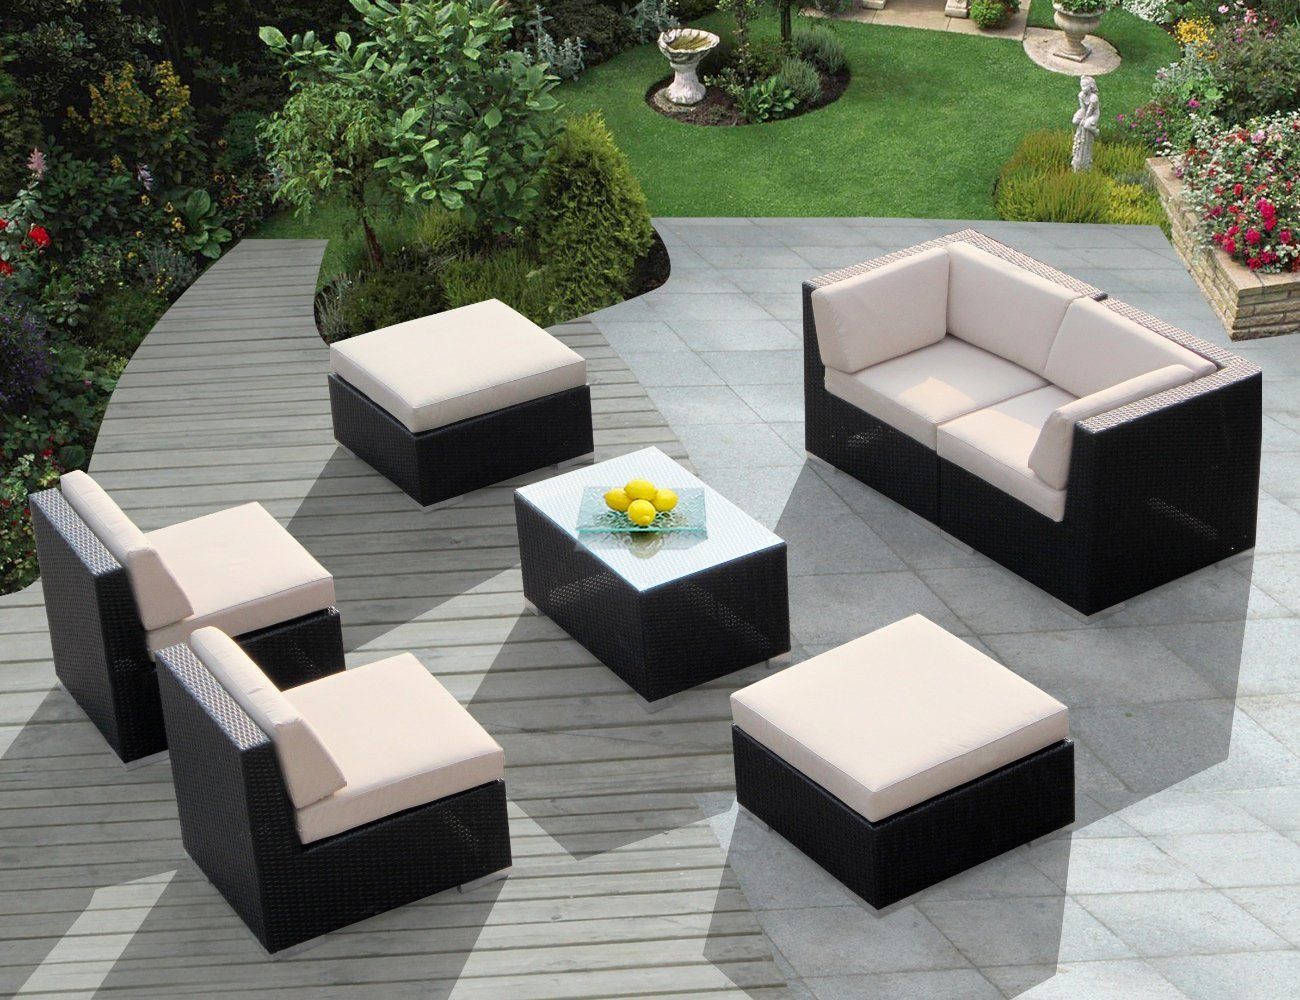 Strathwood outdoor patio furniture buy cheap strathwood for Wicker outdoor furniture